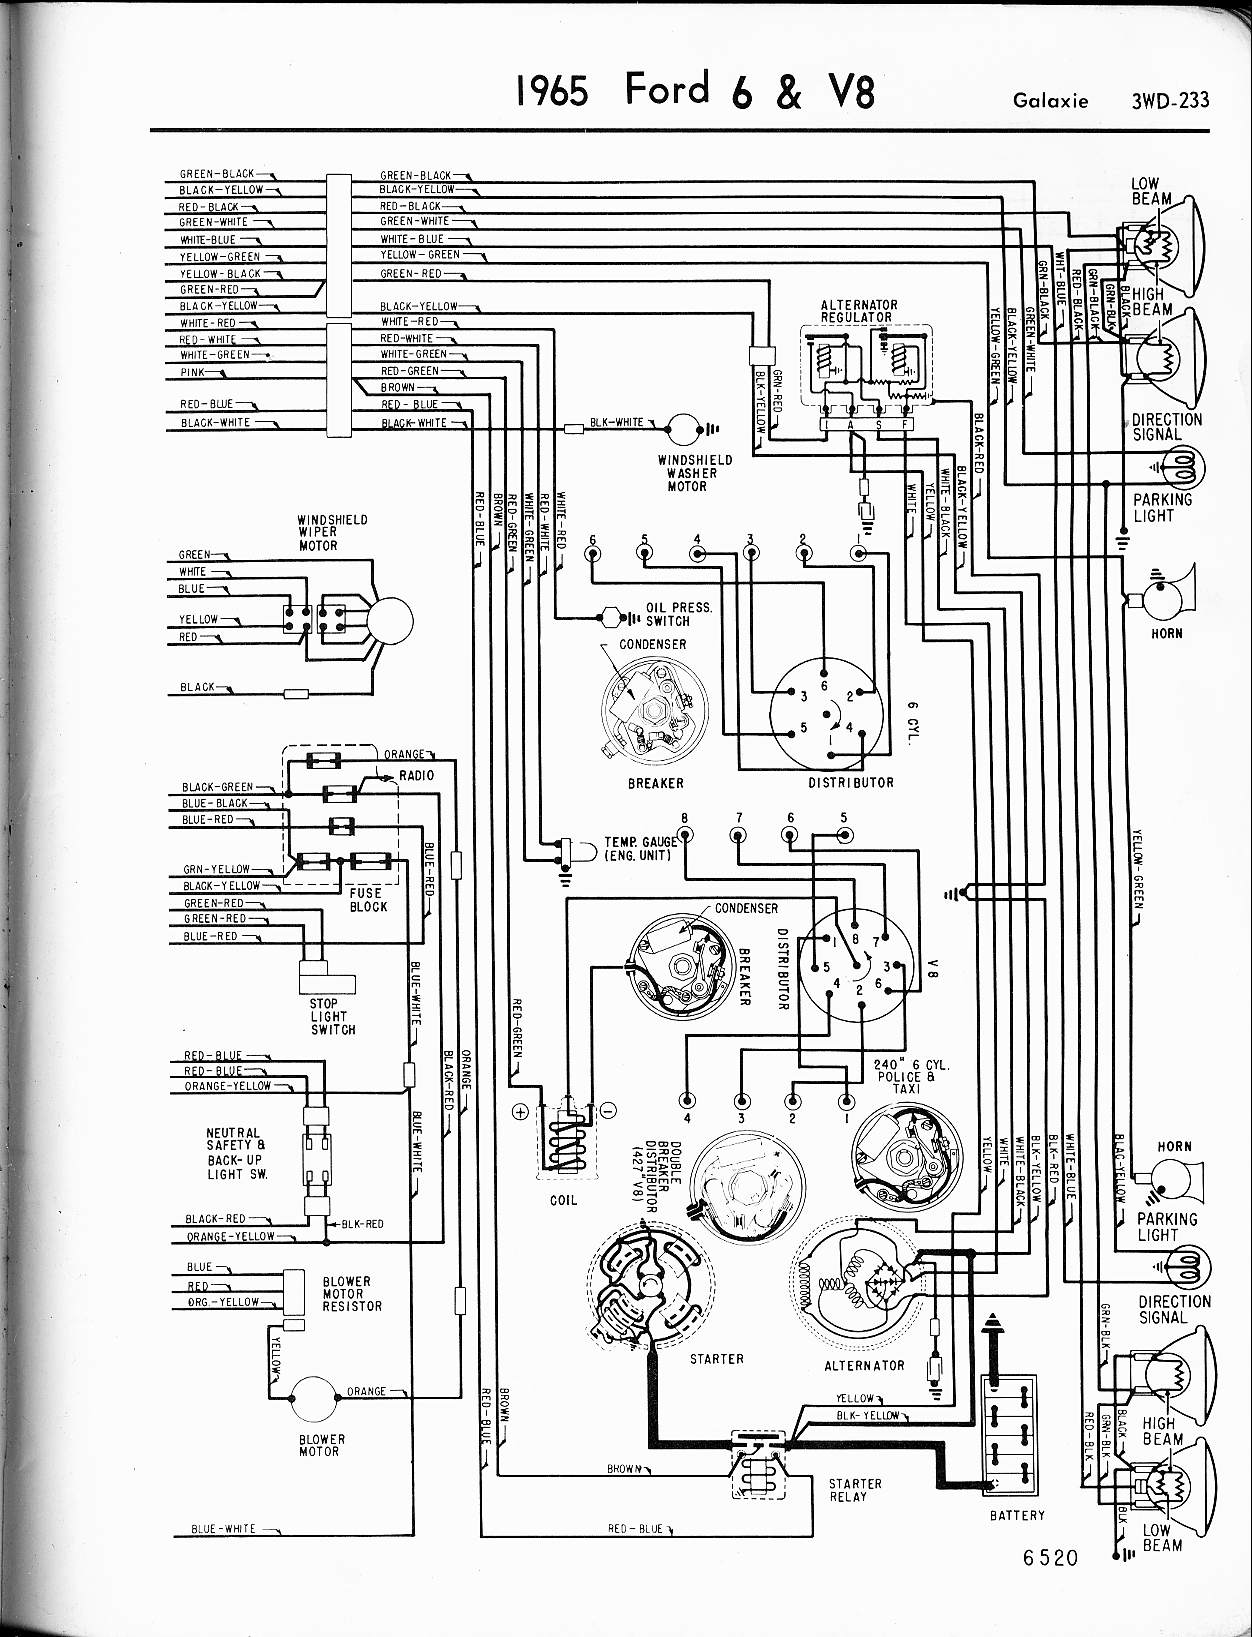 1949 Ford 8n Voltage Regulator Wiring 1949 Automotive Wiring – 8n Ford Wiring Diagram